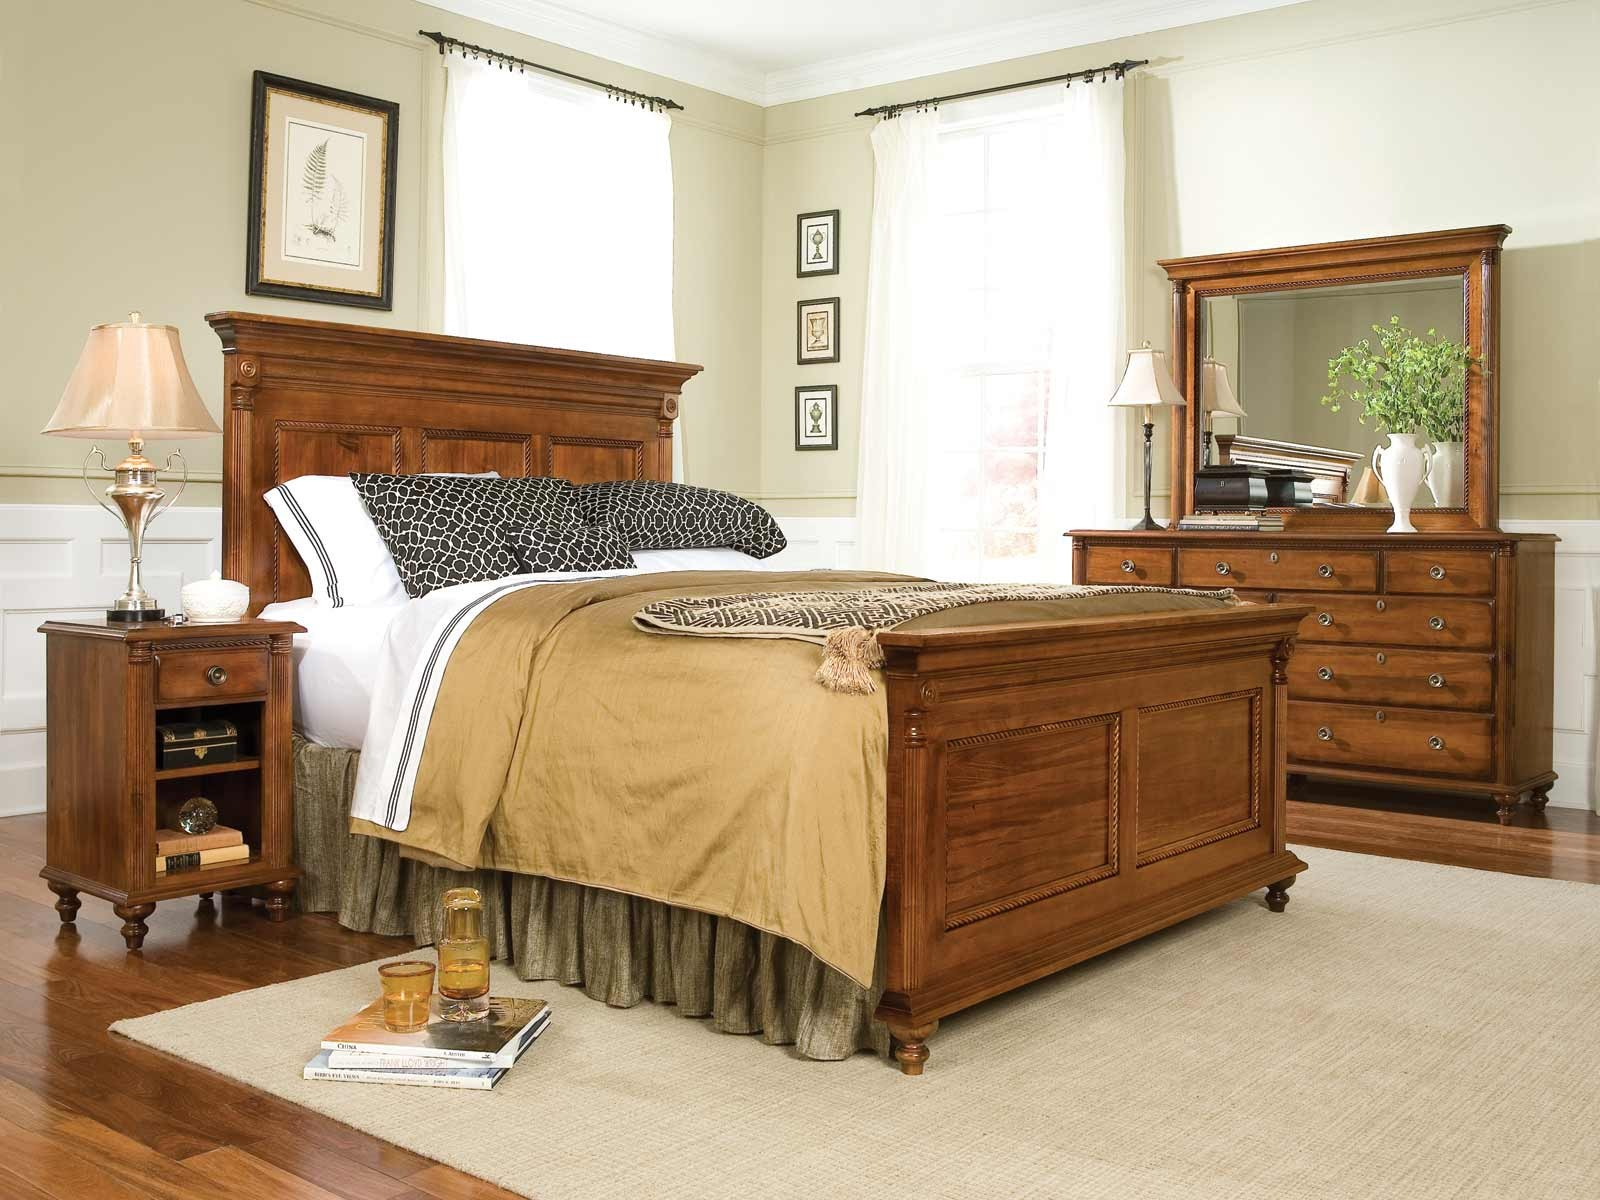 Durham furniture savile row king panel bed in park lane - Bedroom furniture sets buy now pay later ...